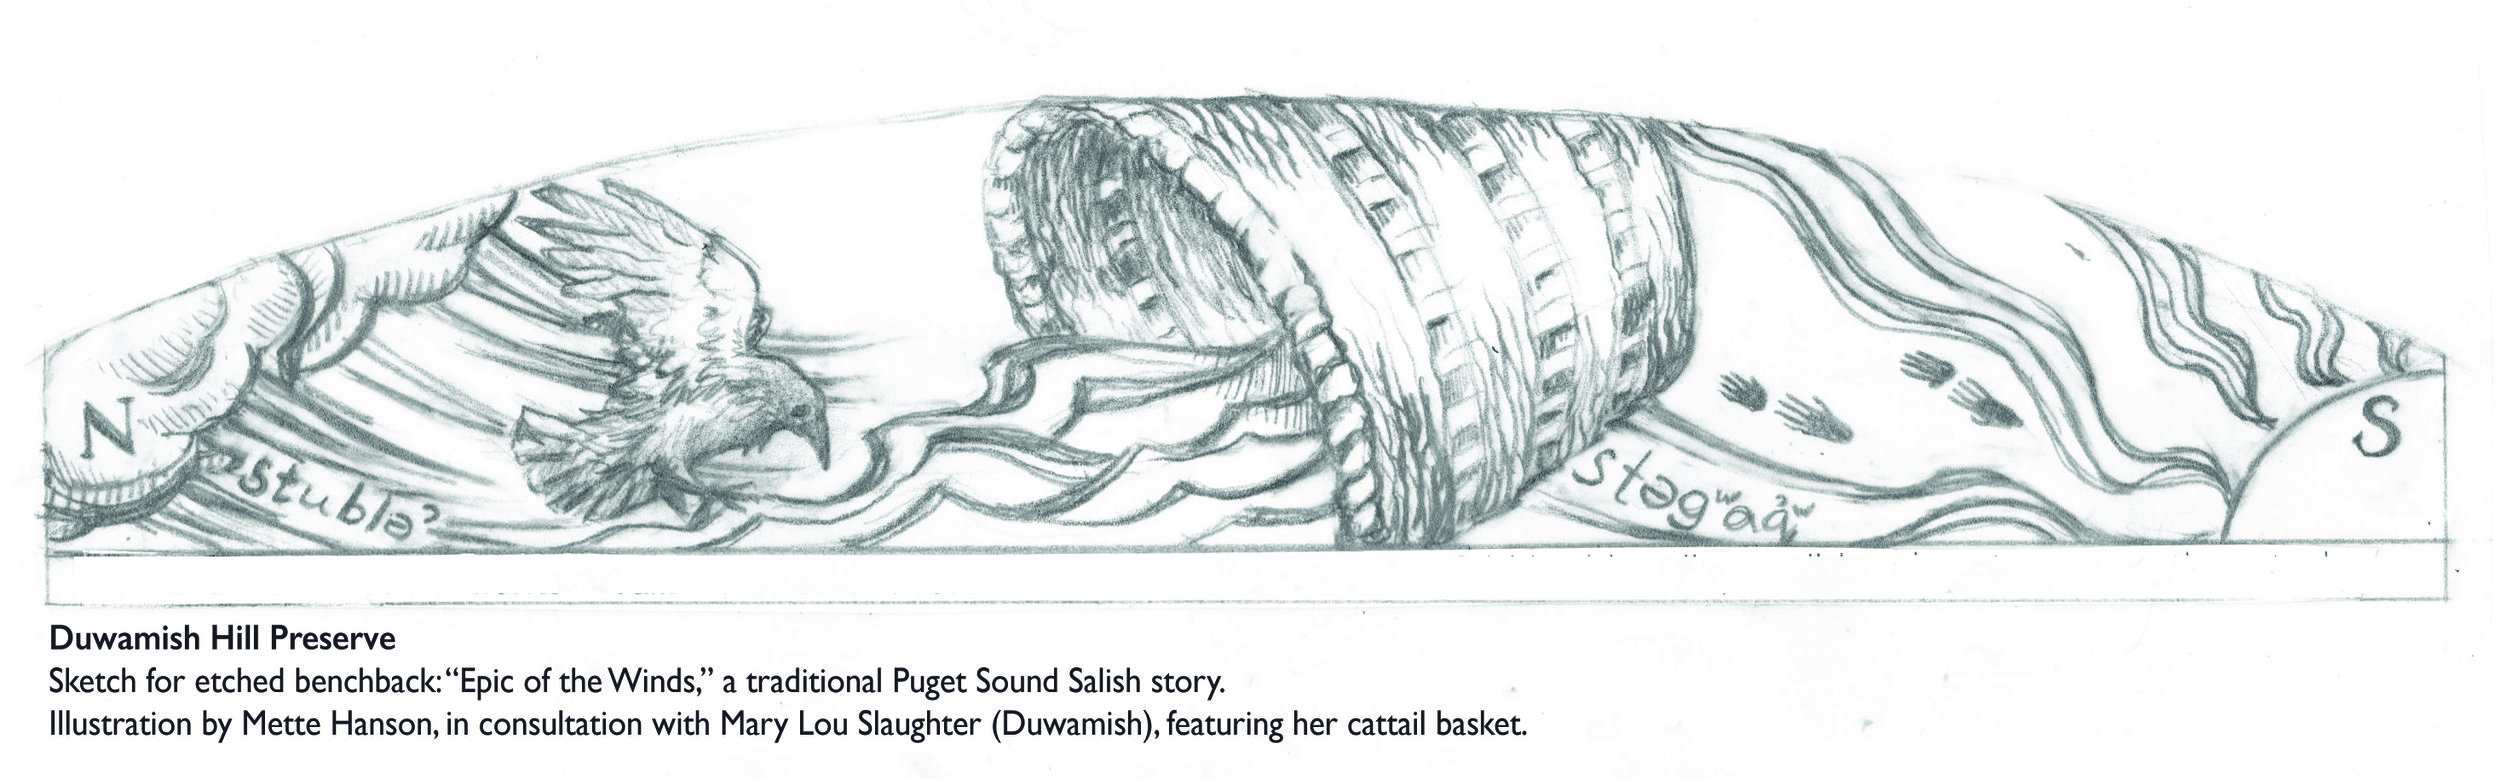 "The sketch for the etched benchback: ""Epic of the Winds,"" a traditional Puget Sound Story, side by side with the finished bench at the Duwamish Hill Preserve. Illustration by Mette Hanson, in consultation with Mary Lou Slaughter (Duwamish), featuring her cattail basket."